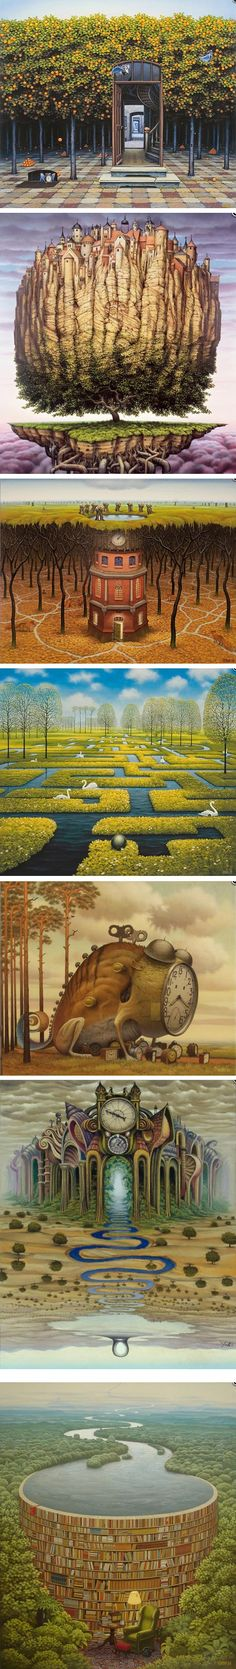 Jacek Yerka whimsical and surreal Art Photography, Fine Art, Surreal Art, Amazing Art, Whimsical Art, Surrealism, Art, Art And Architecture, Interesting Art